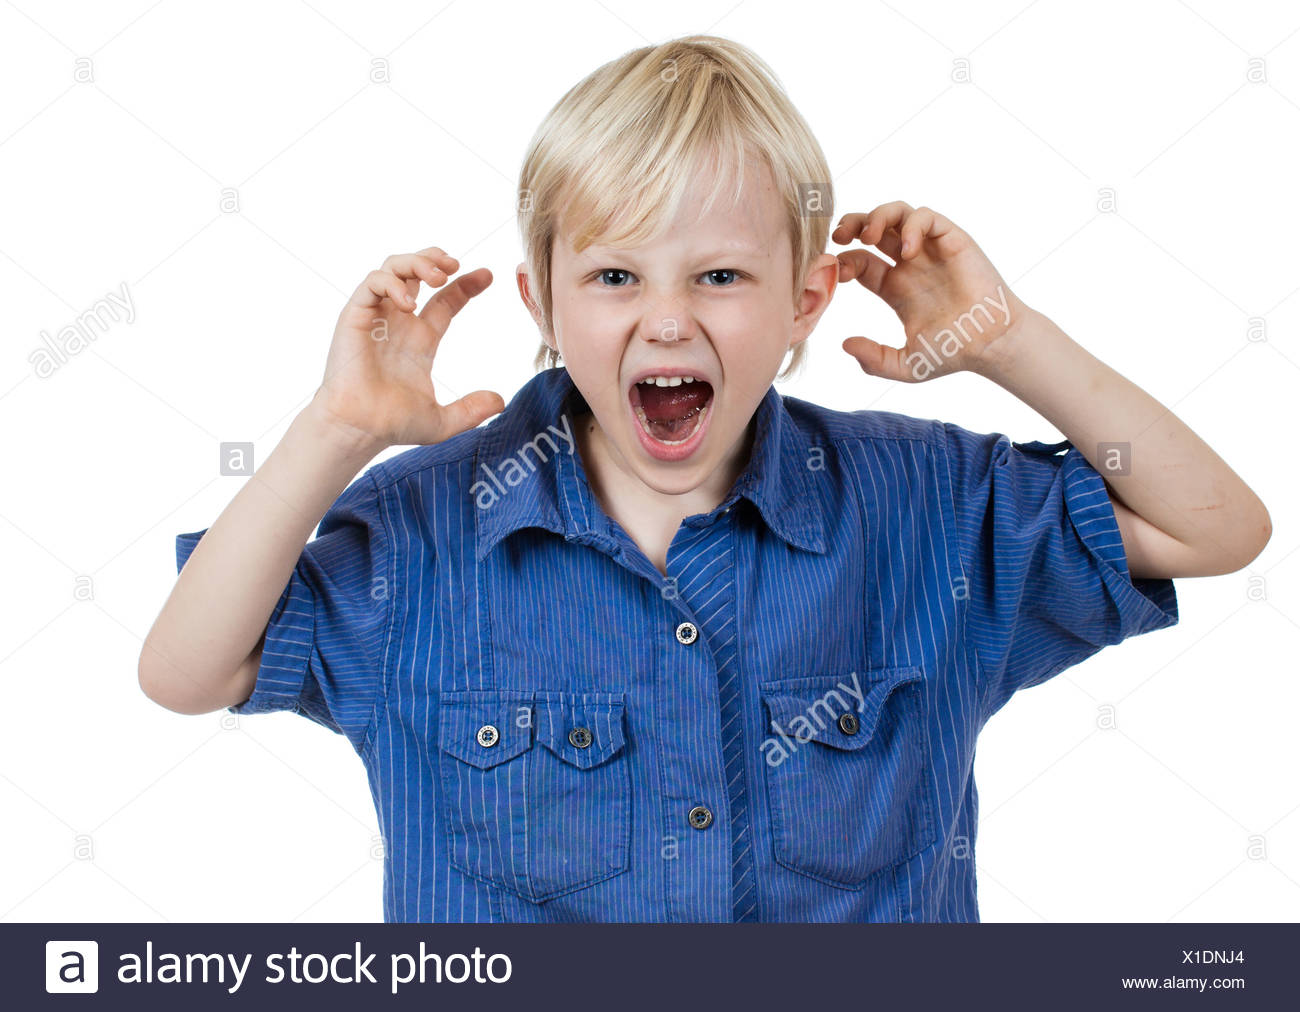 Angry frustrated young boy - Stock Image